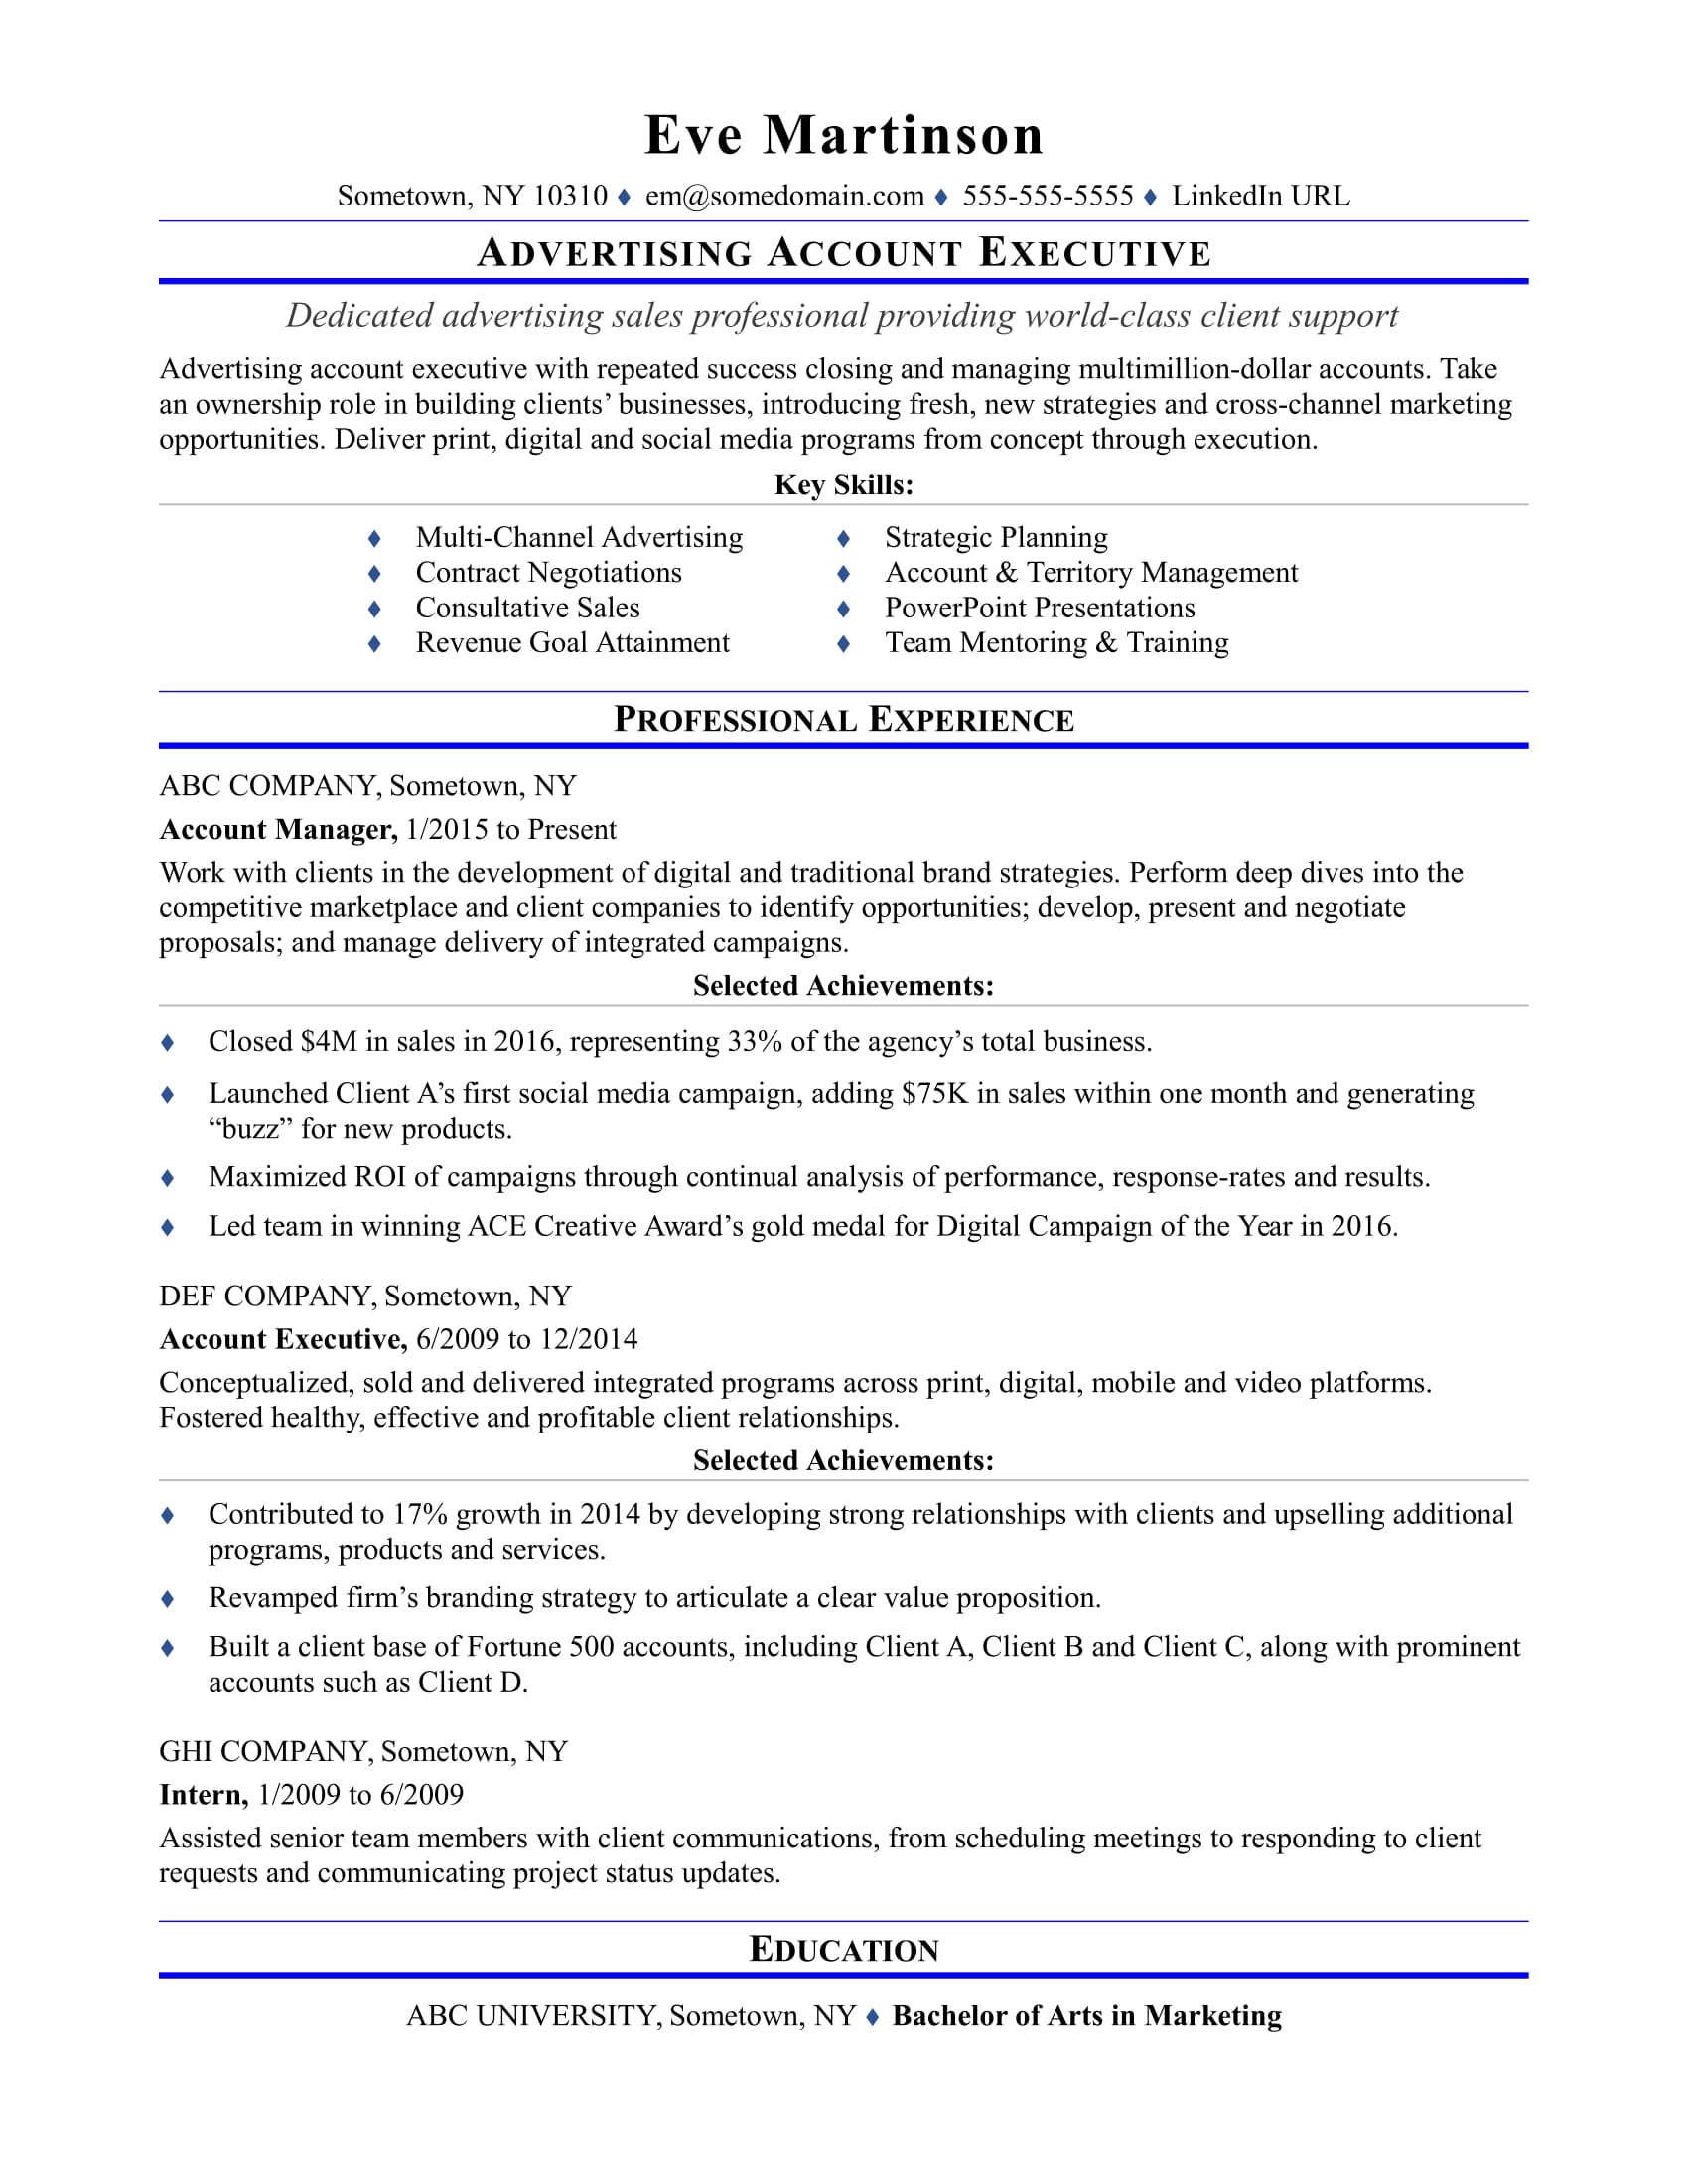 sample resume for an advertising account executive monster packages customer support Resume Executive Resume Packages